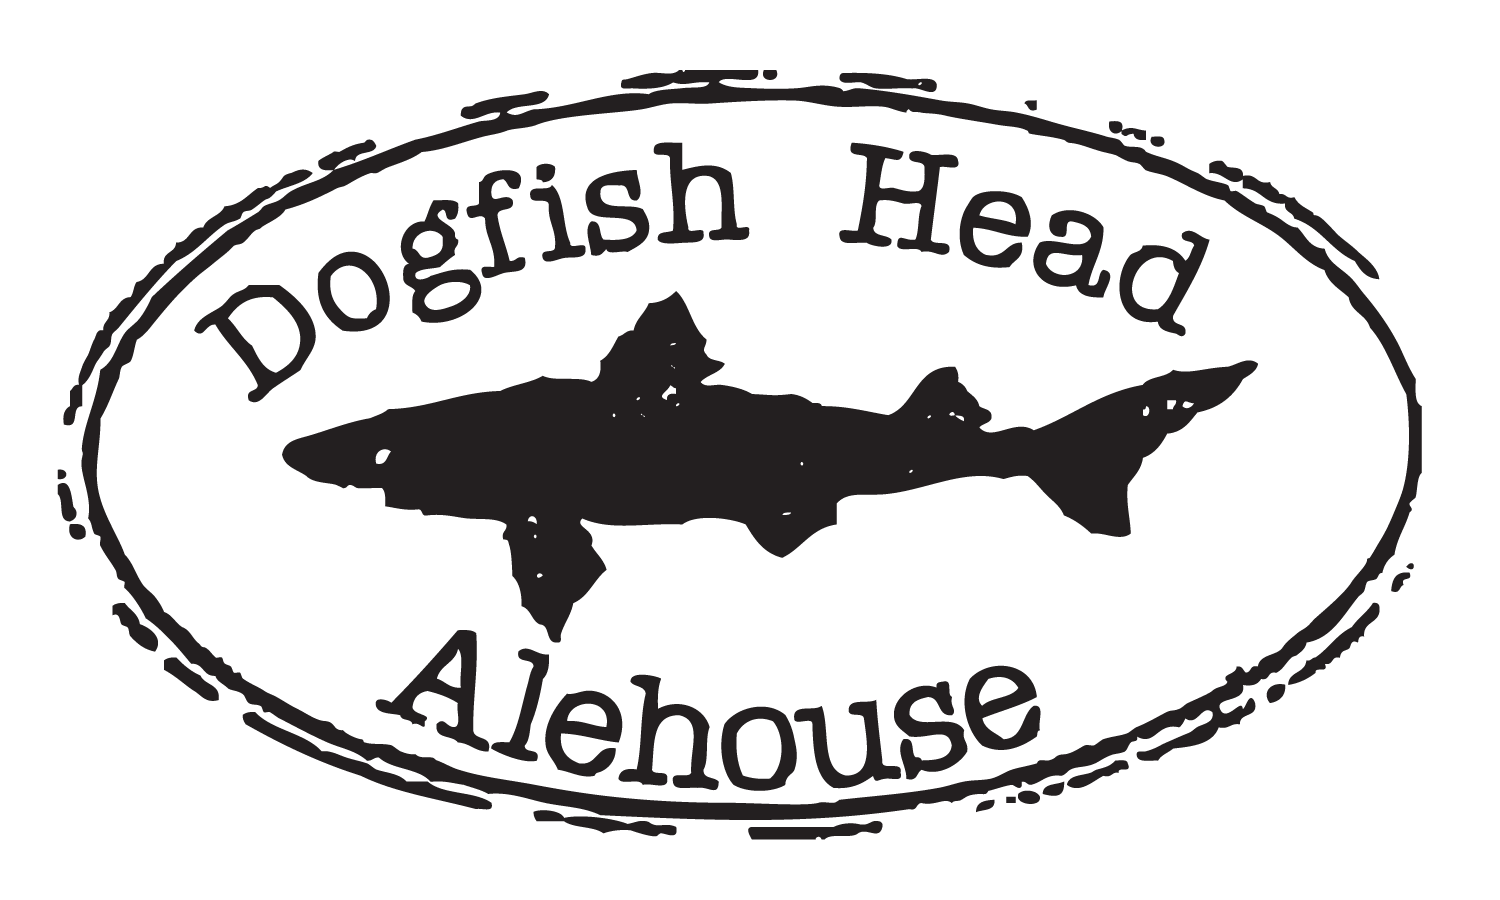 Dog Fish Head Ale House